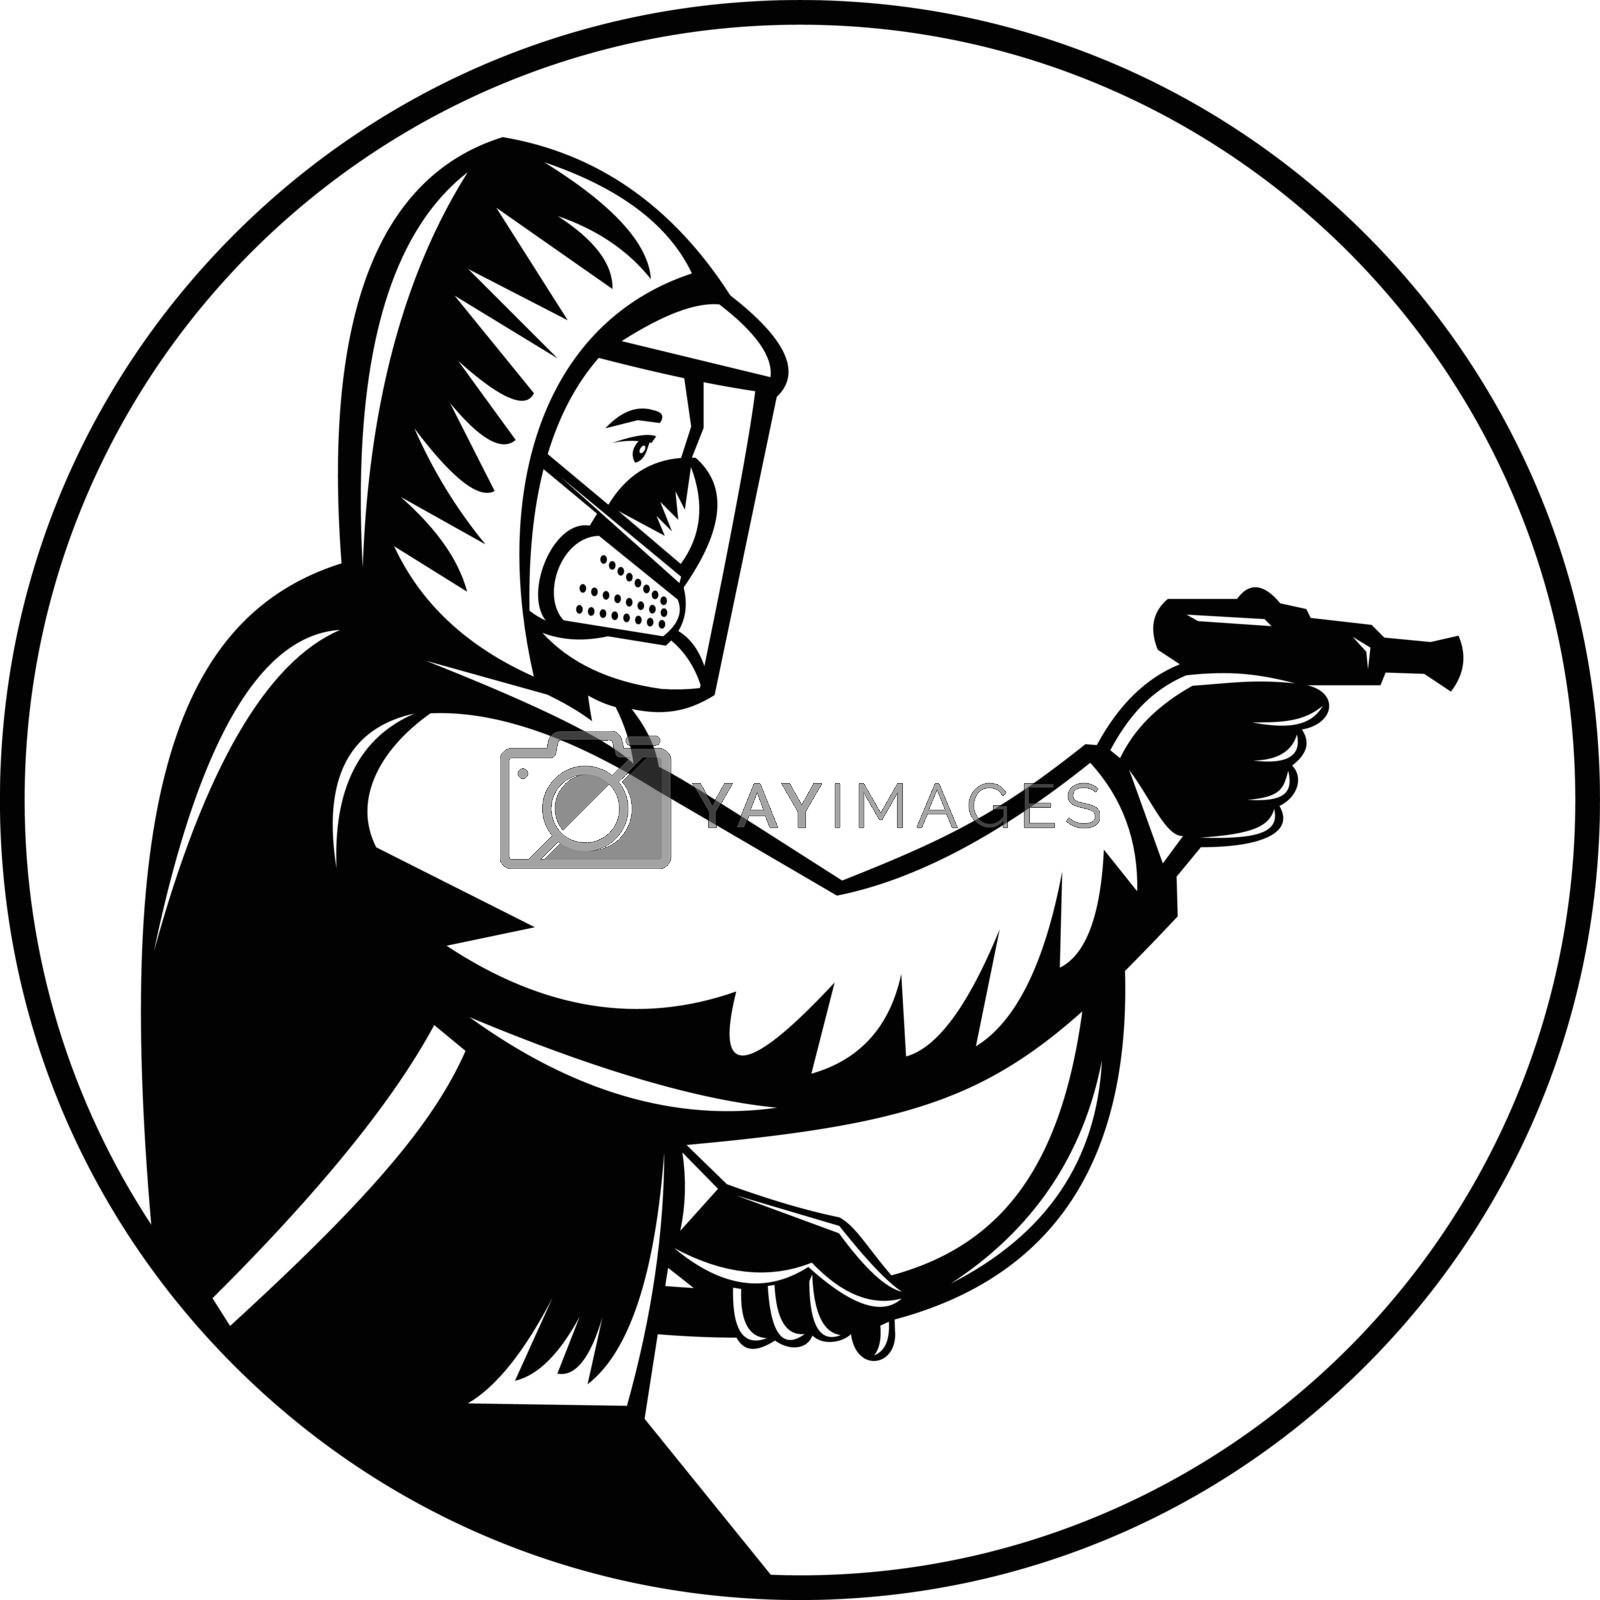 Retro woodcut style illustration of a pest control exterminator spraying pesticide or insecticide viewed from side set in circle on isolated background done in black and white.